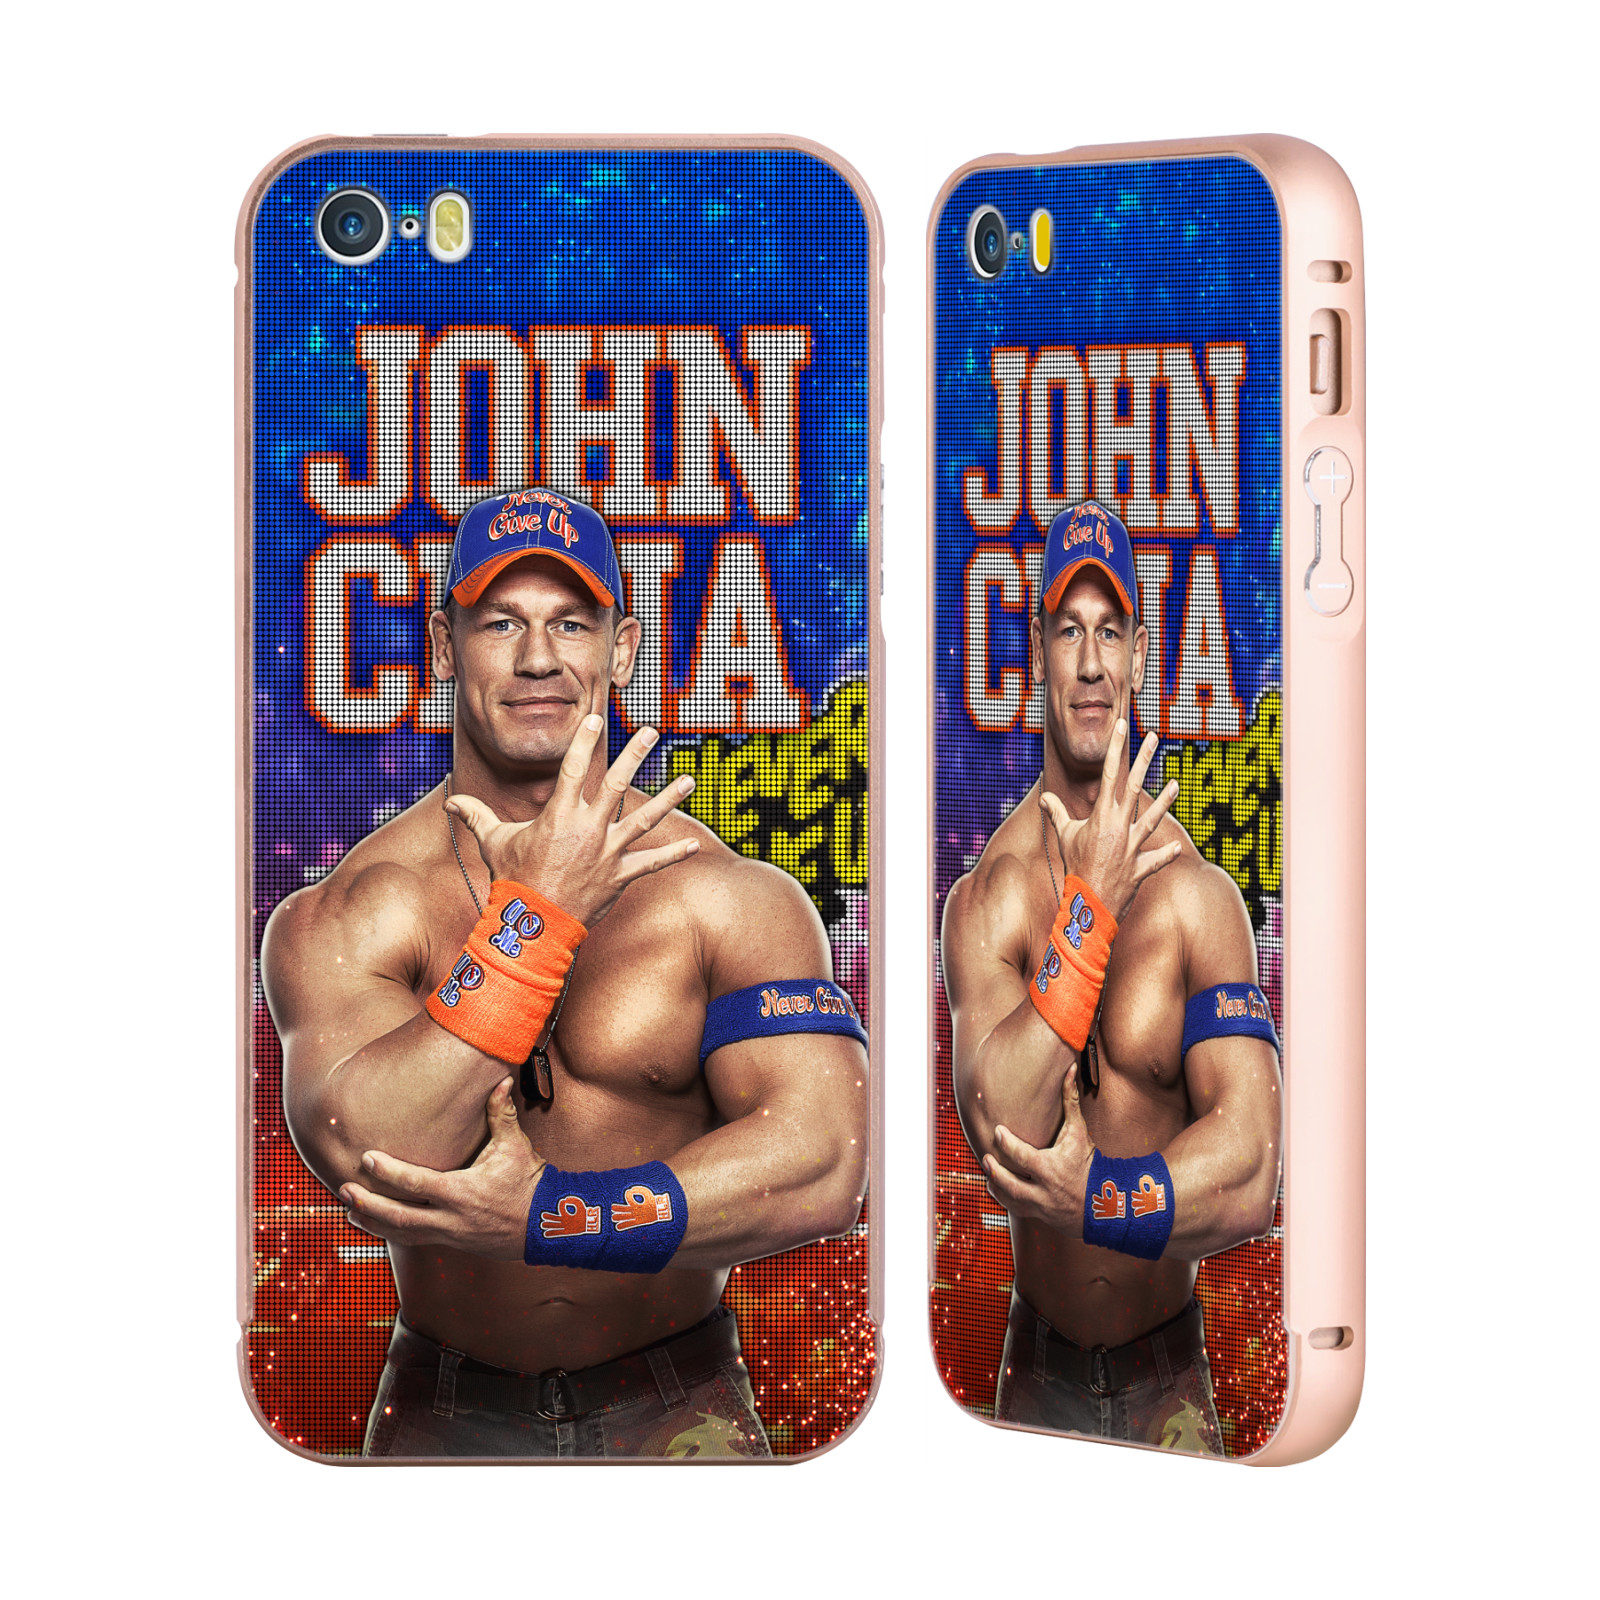 UFFICIALE-WWE-2017-JOHN-CENA-ORO-COVER-CONTORNO-PER-APPLE-iPHONE-TELEFONI